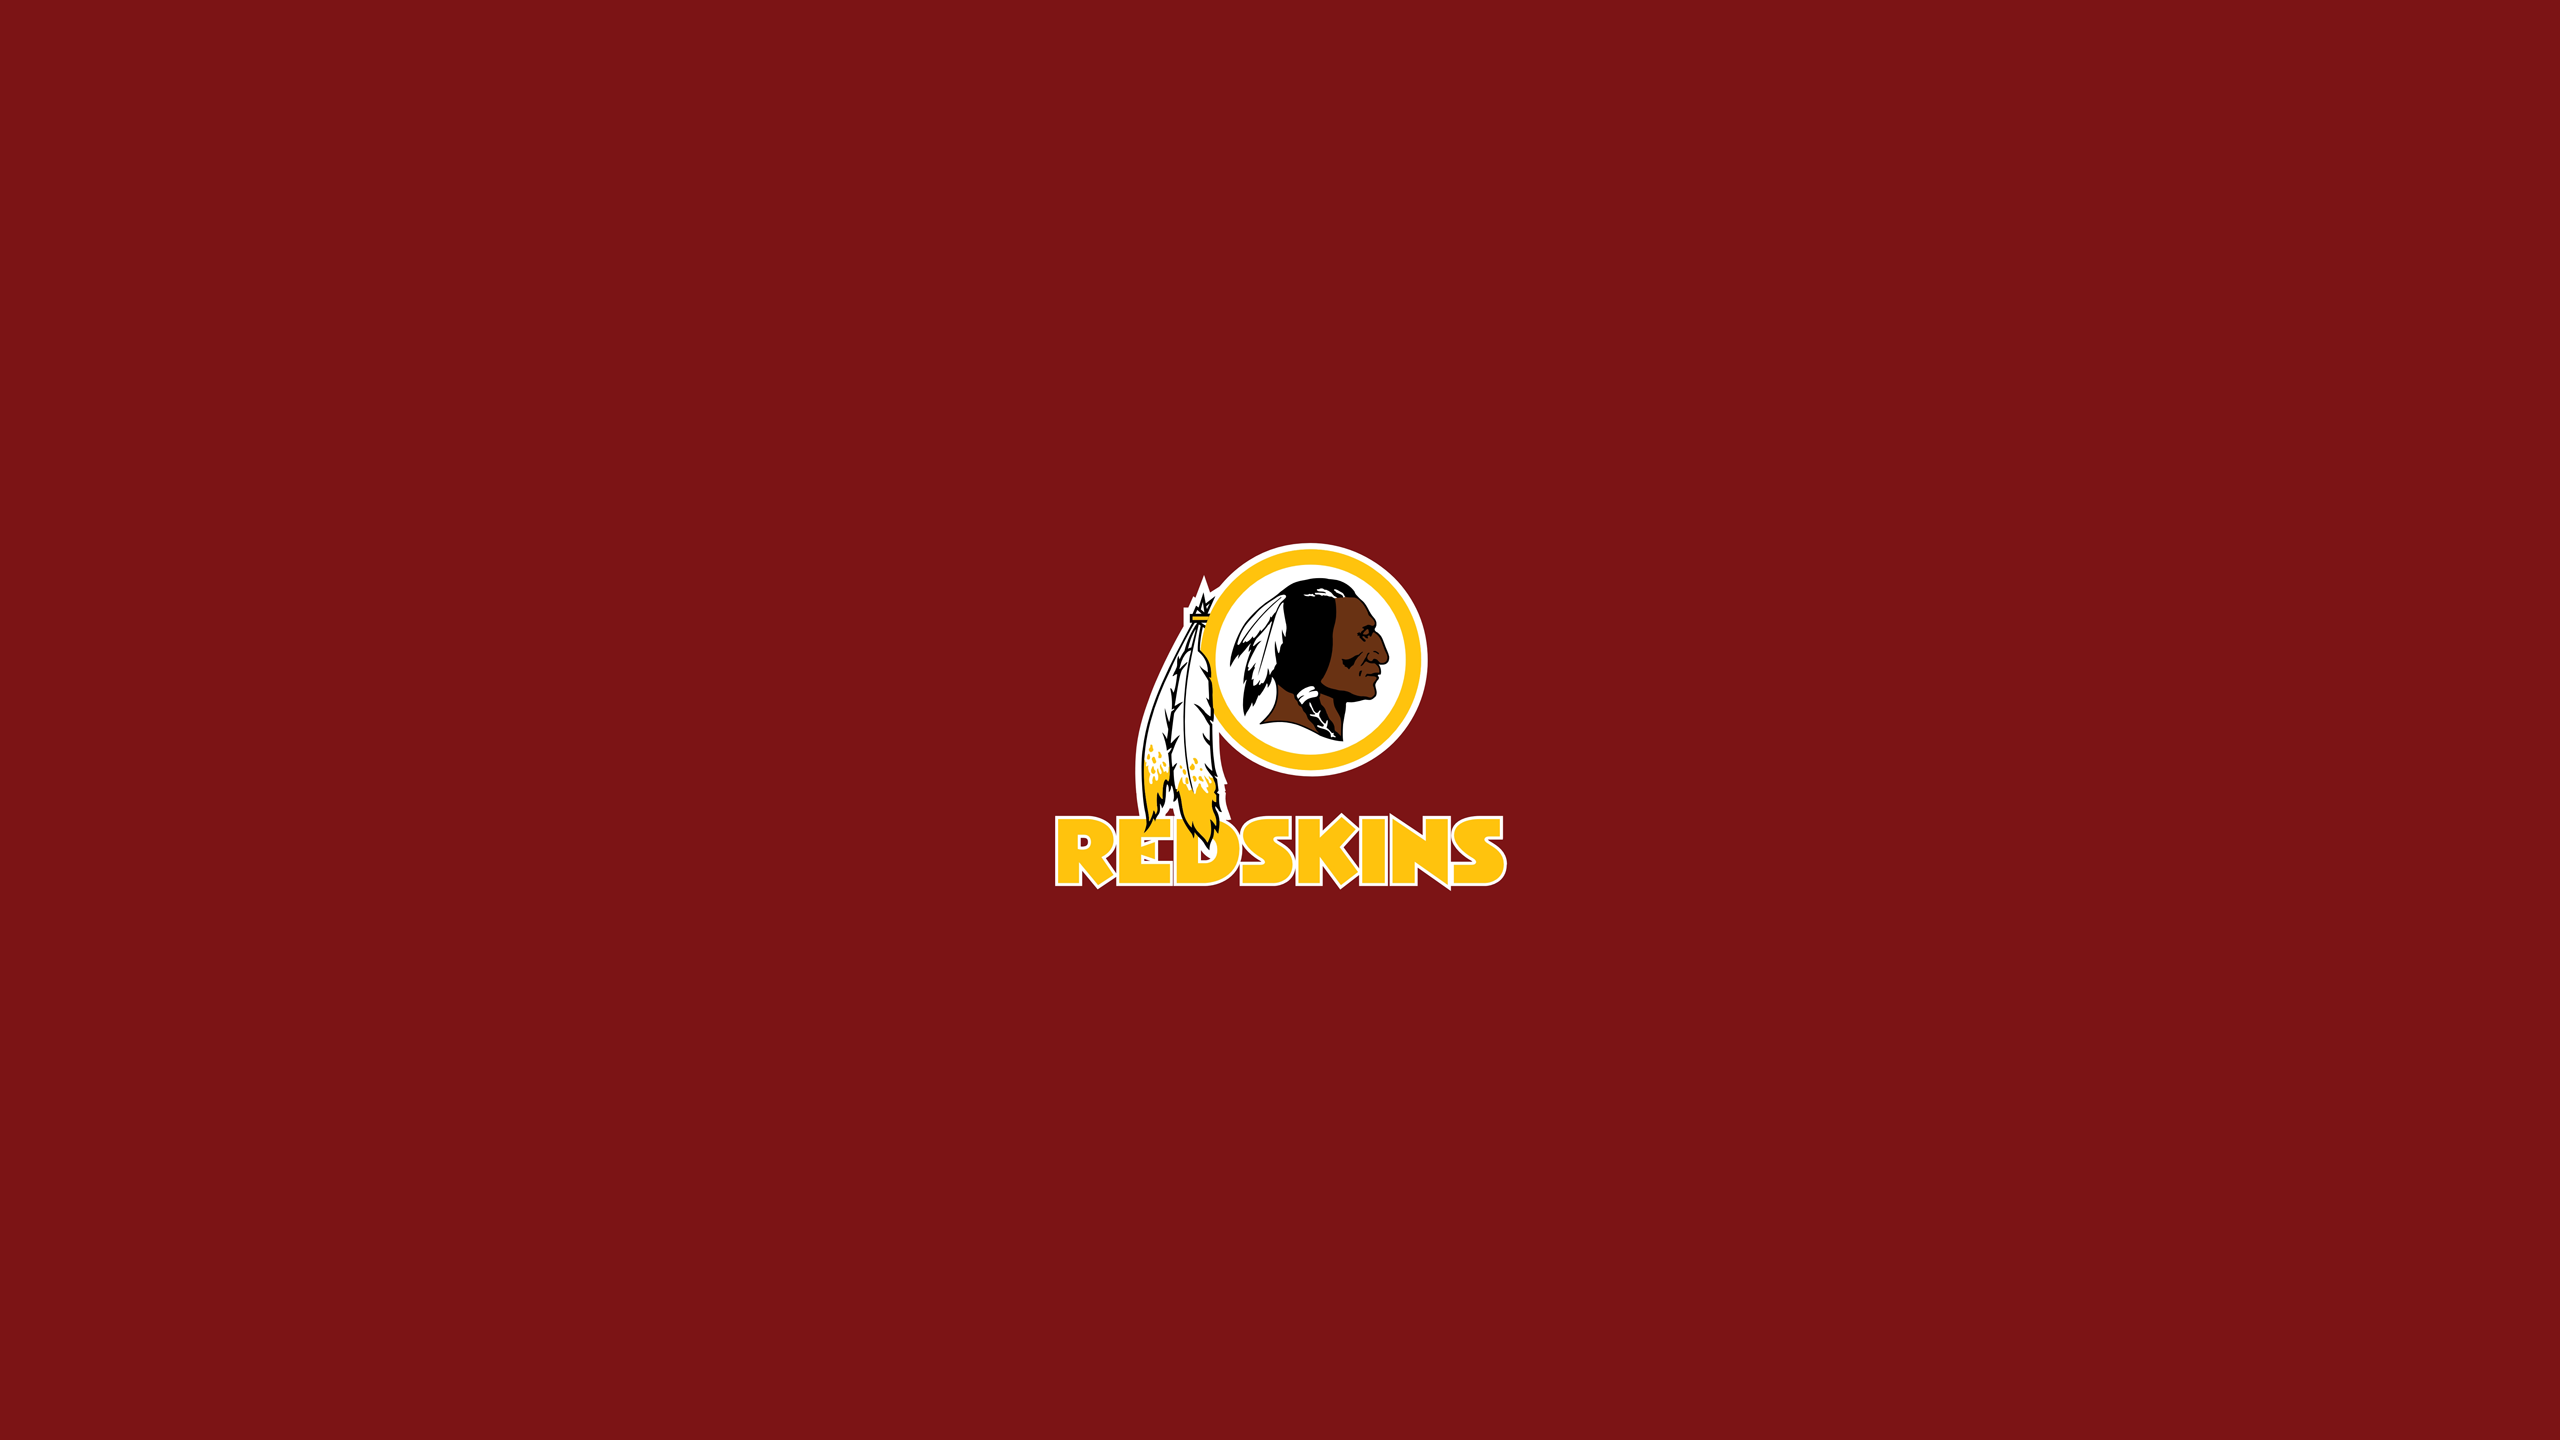 Pictures washington redskins 1 cellphone wallpaper pictures washington 2560x1440